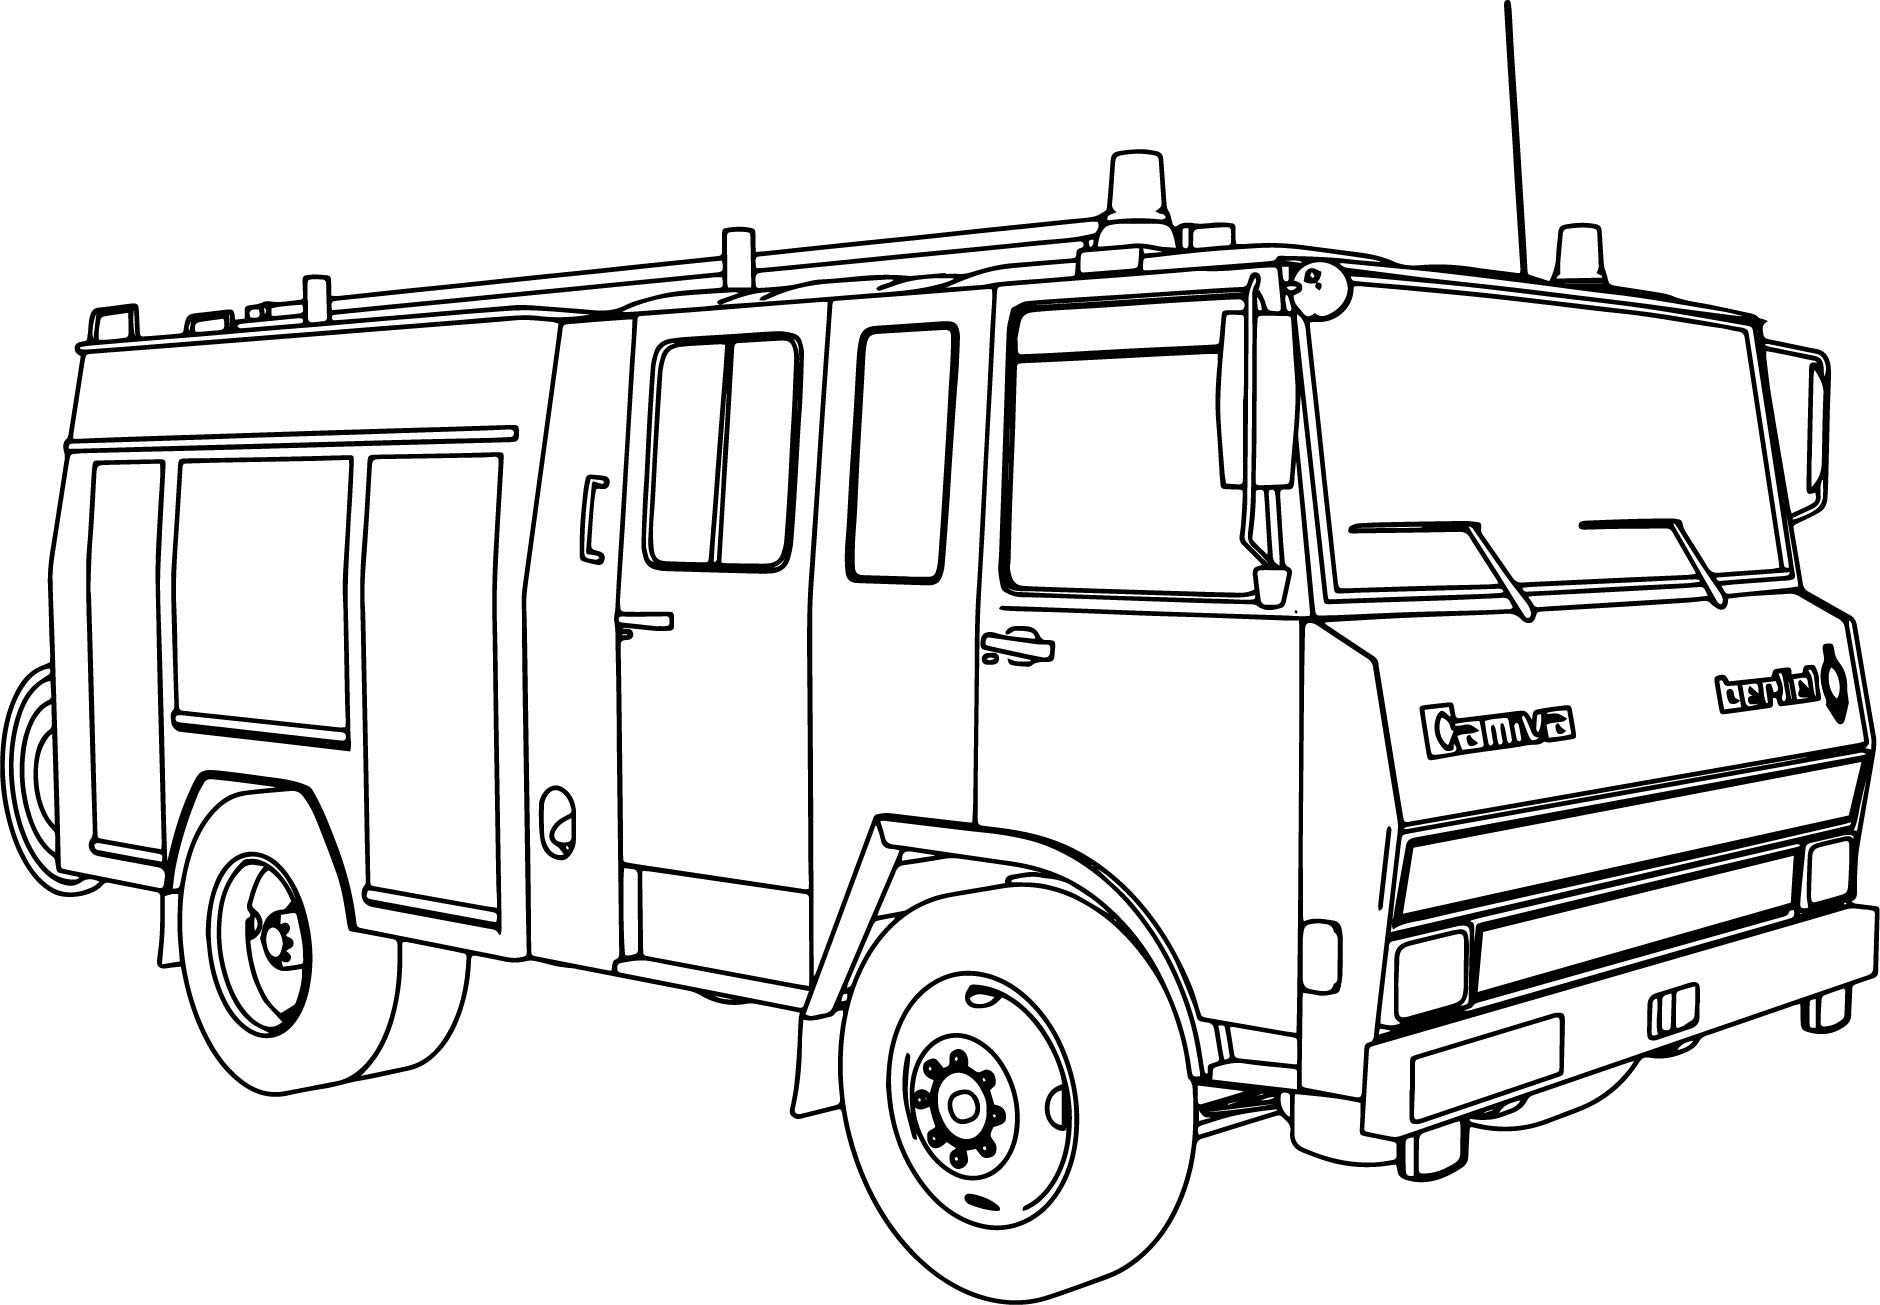 Easy Truck Drawing at GetDrawings.com | Free for personal use Easy ...